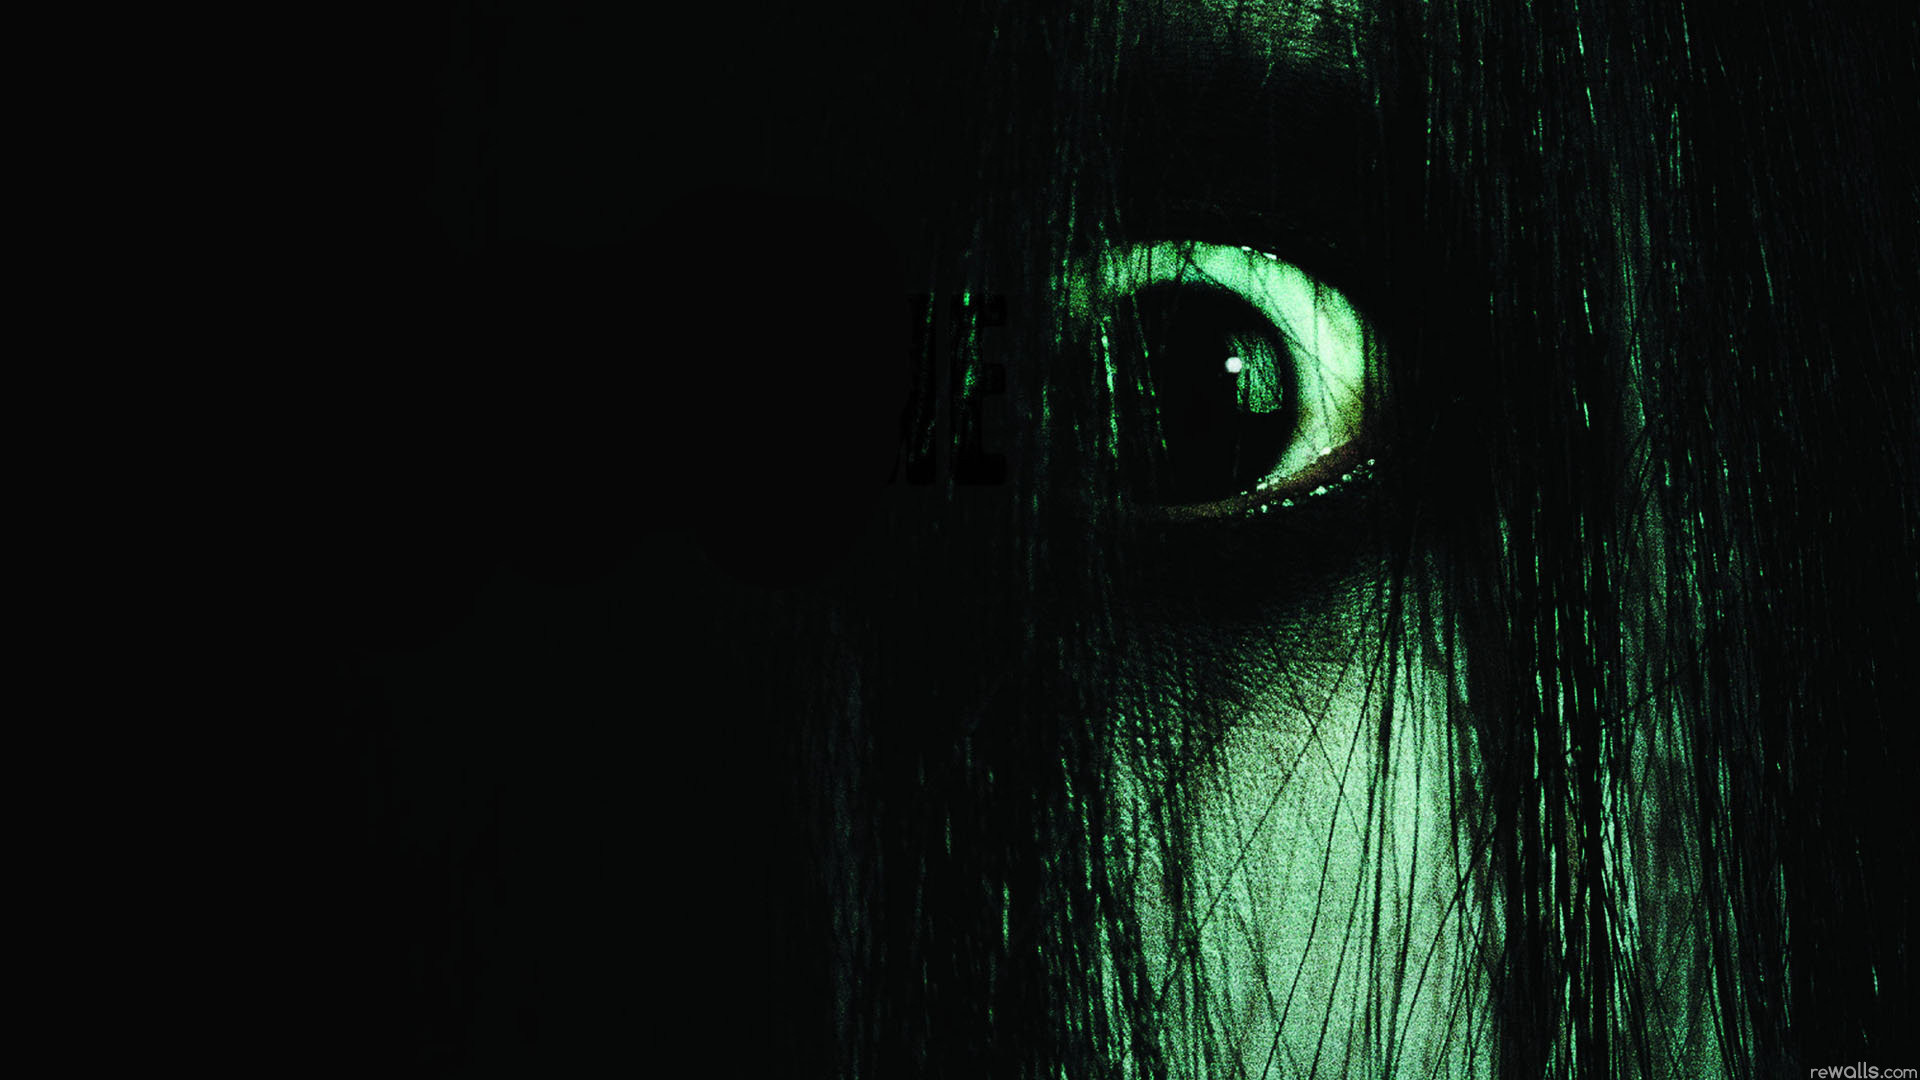 Res: 1920x1080, Haunted-eyes-1080p-hd-wallpaper-1080p-hd-wallpapers - Forest Paranormal  Investigations